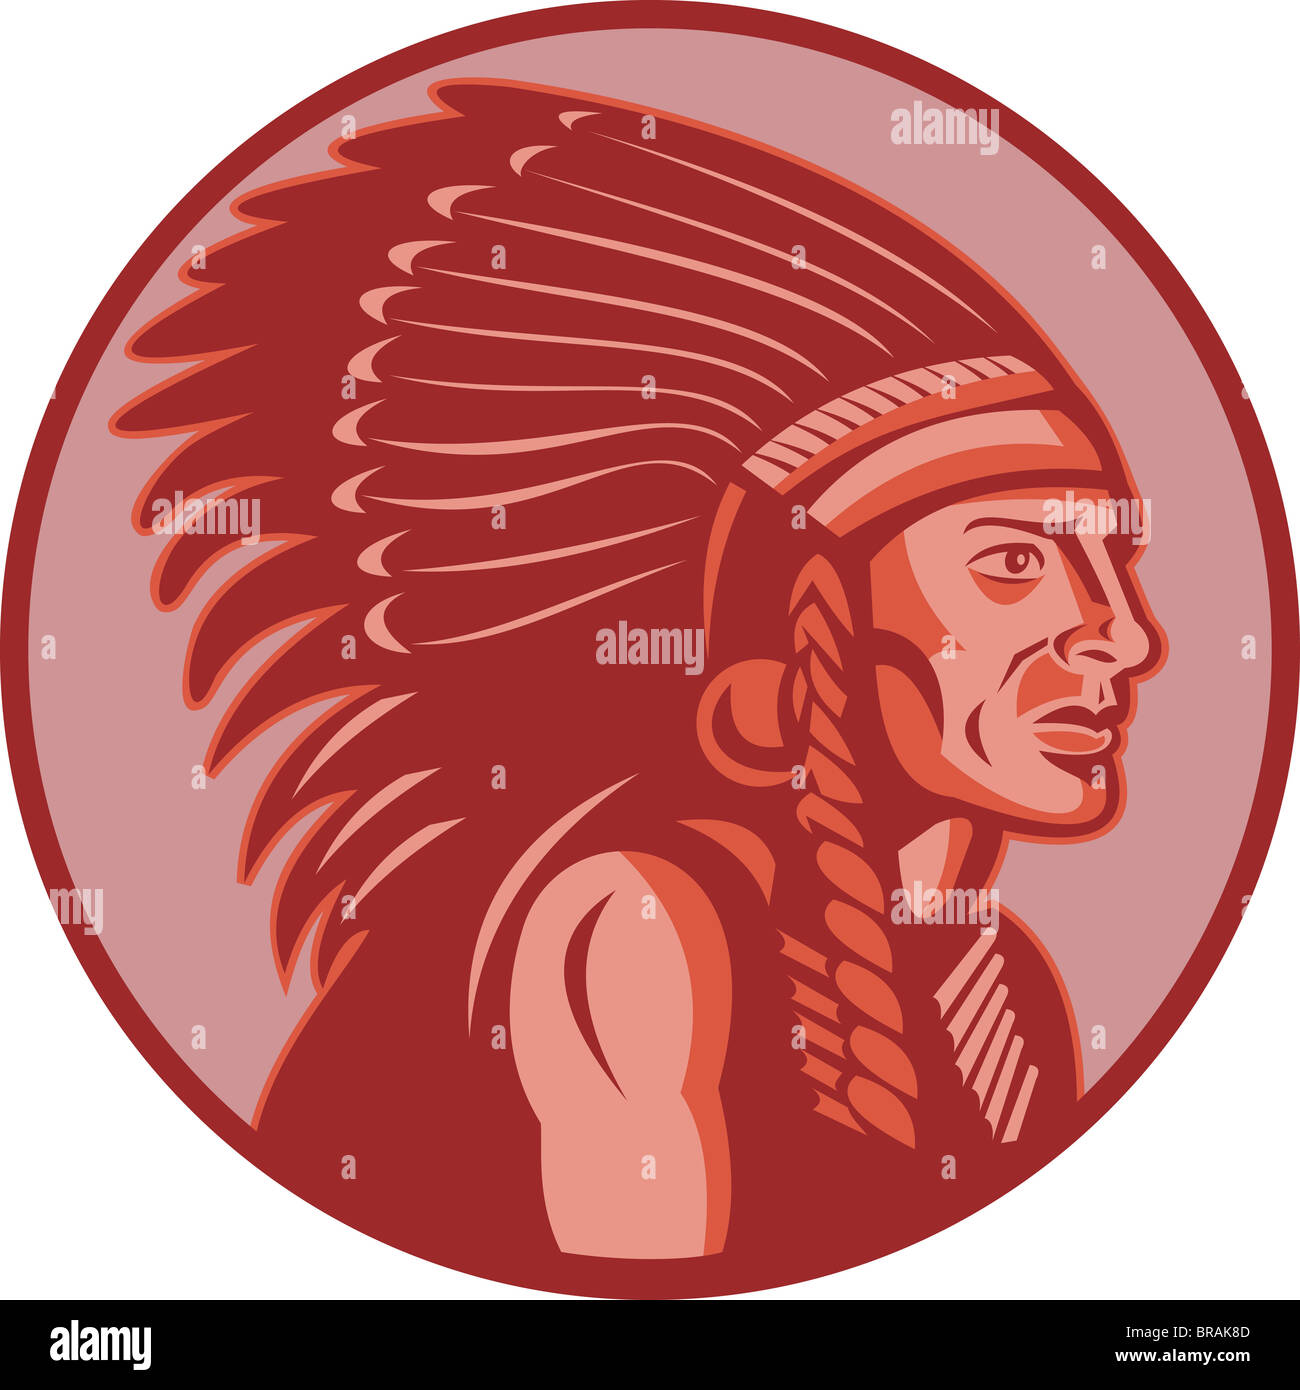 illustration of a native american indian chief side view done in retro style - Stock Image